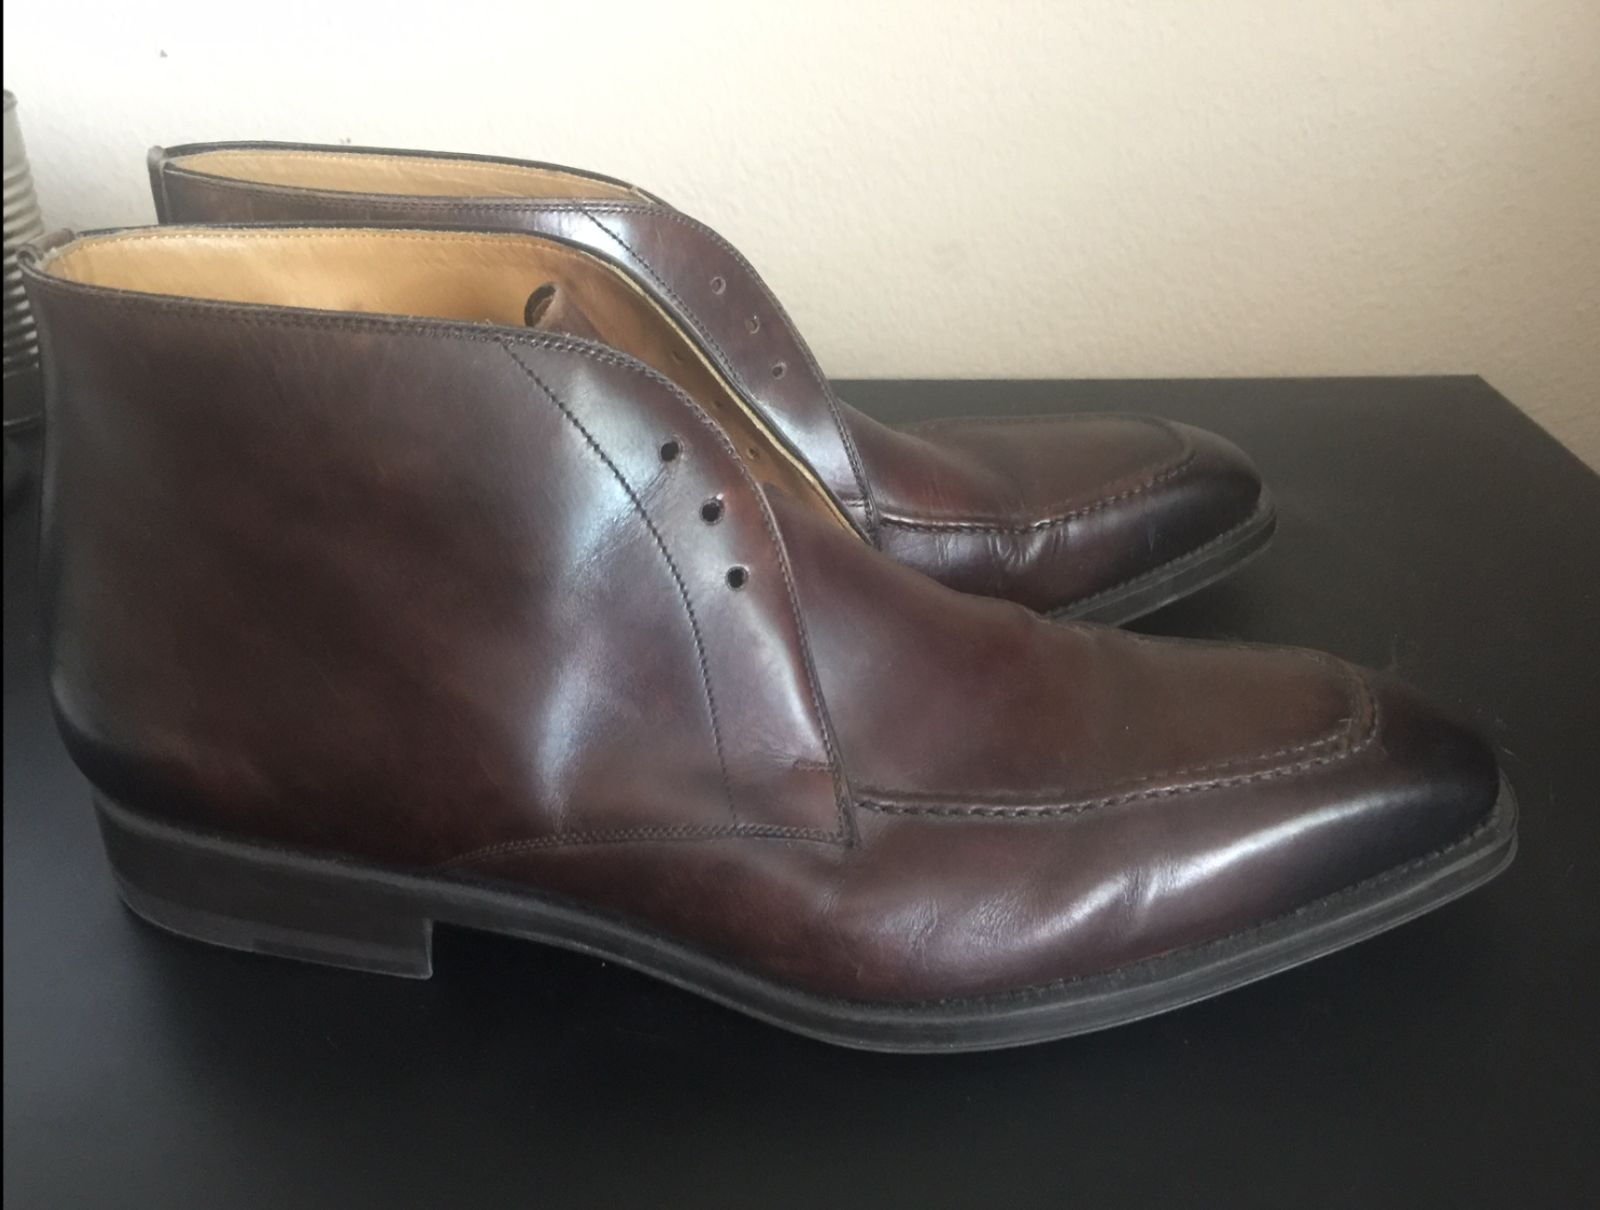 new mens magnanni brown leather oxford dress shoes made in